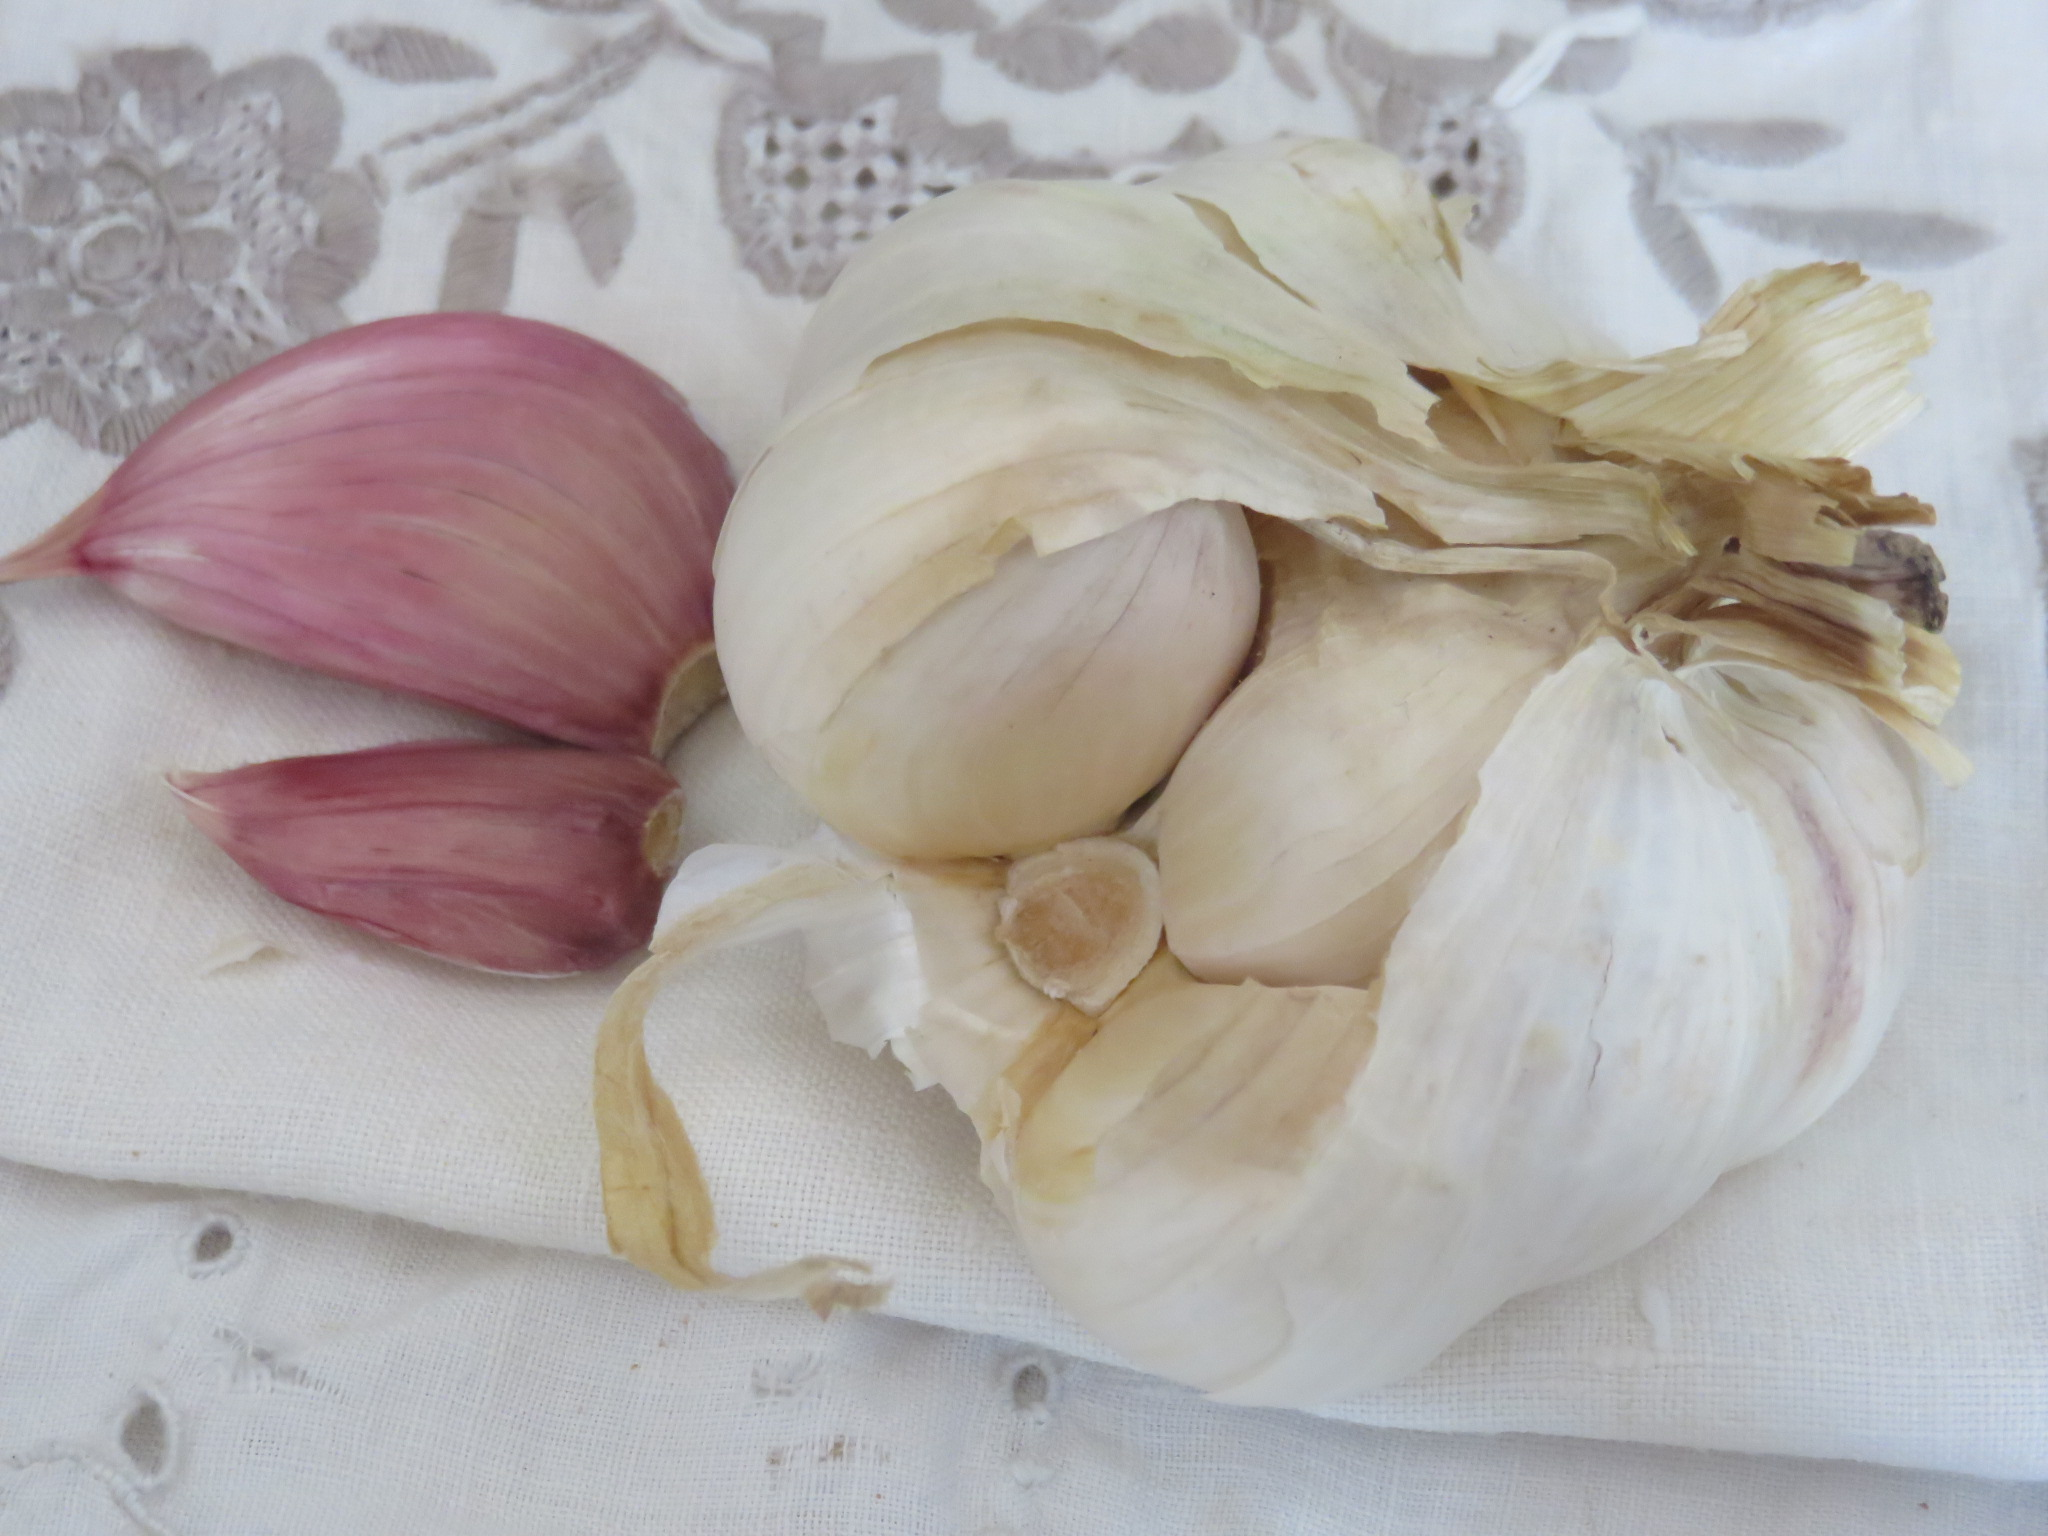 Garlic is the Queen of herbs, with multiple health benefits